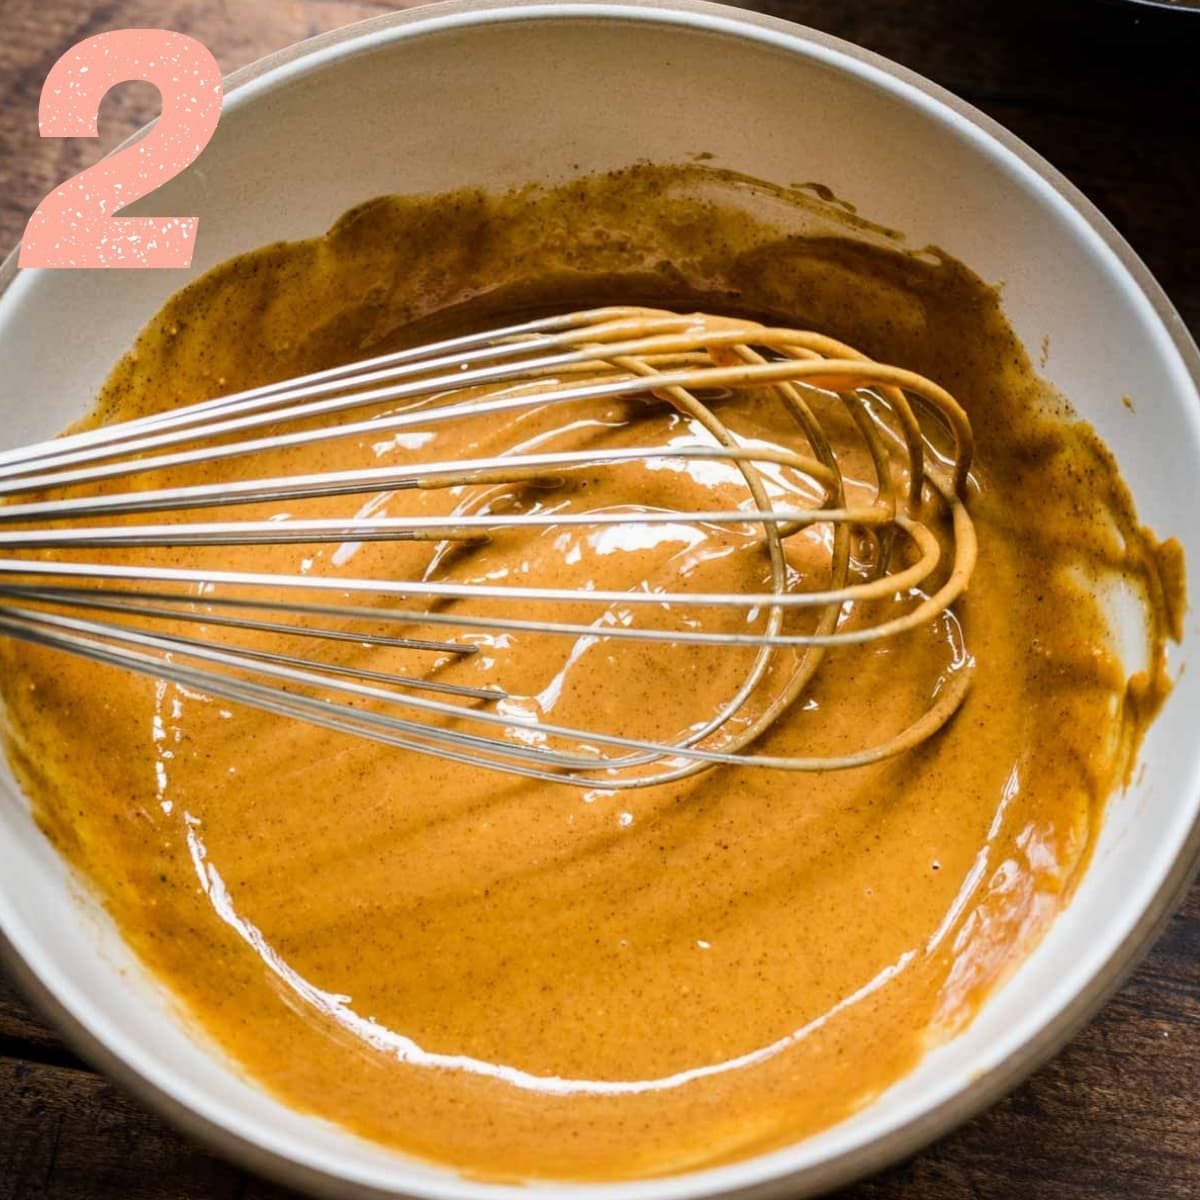 close up view of peanut butter filling in a mixing bowl with whisk.